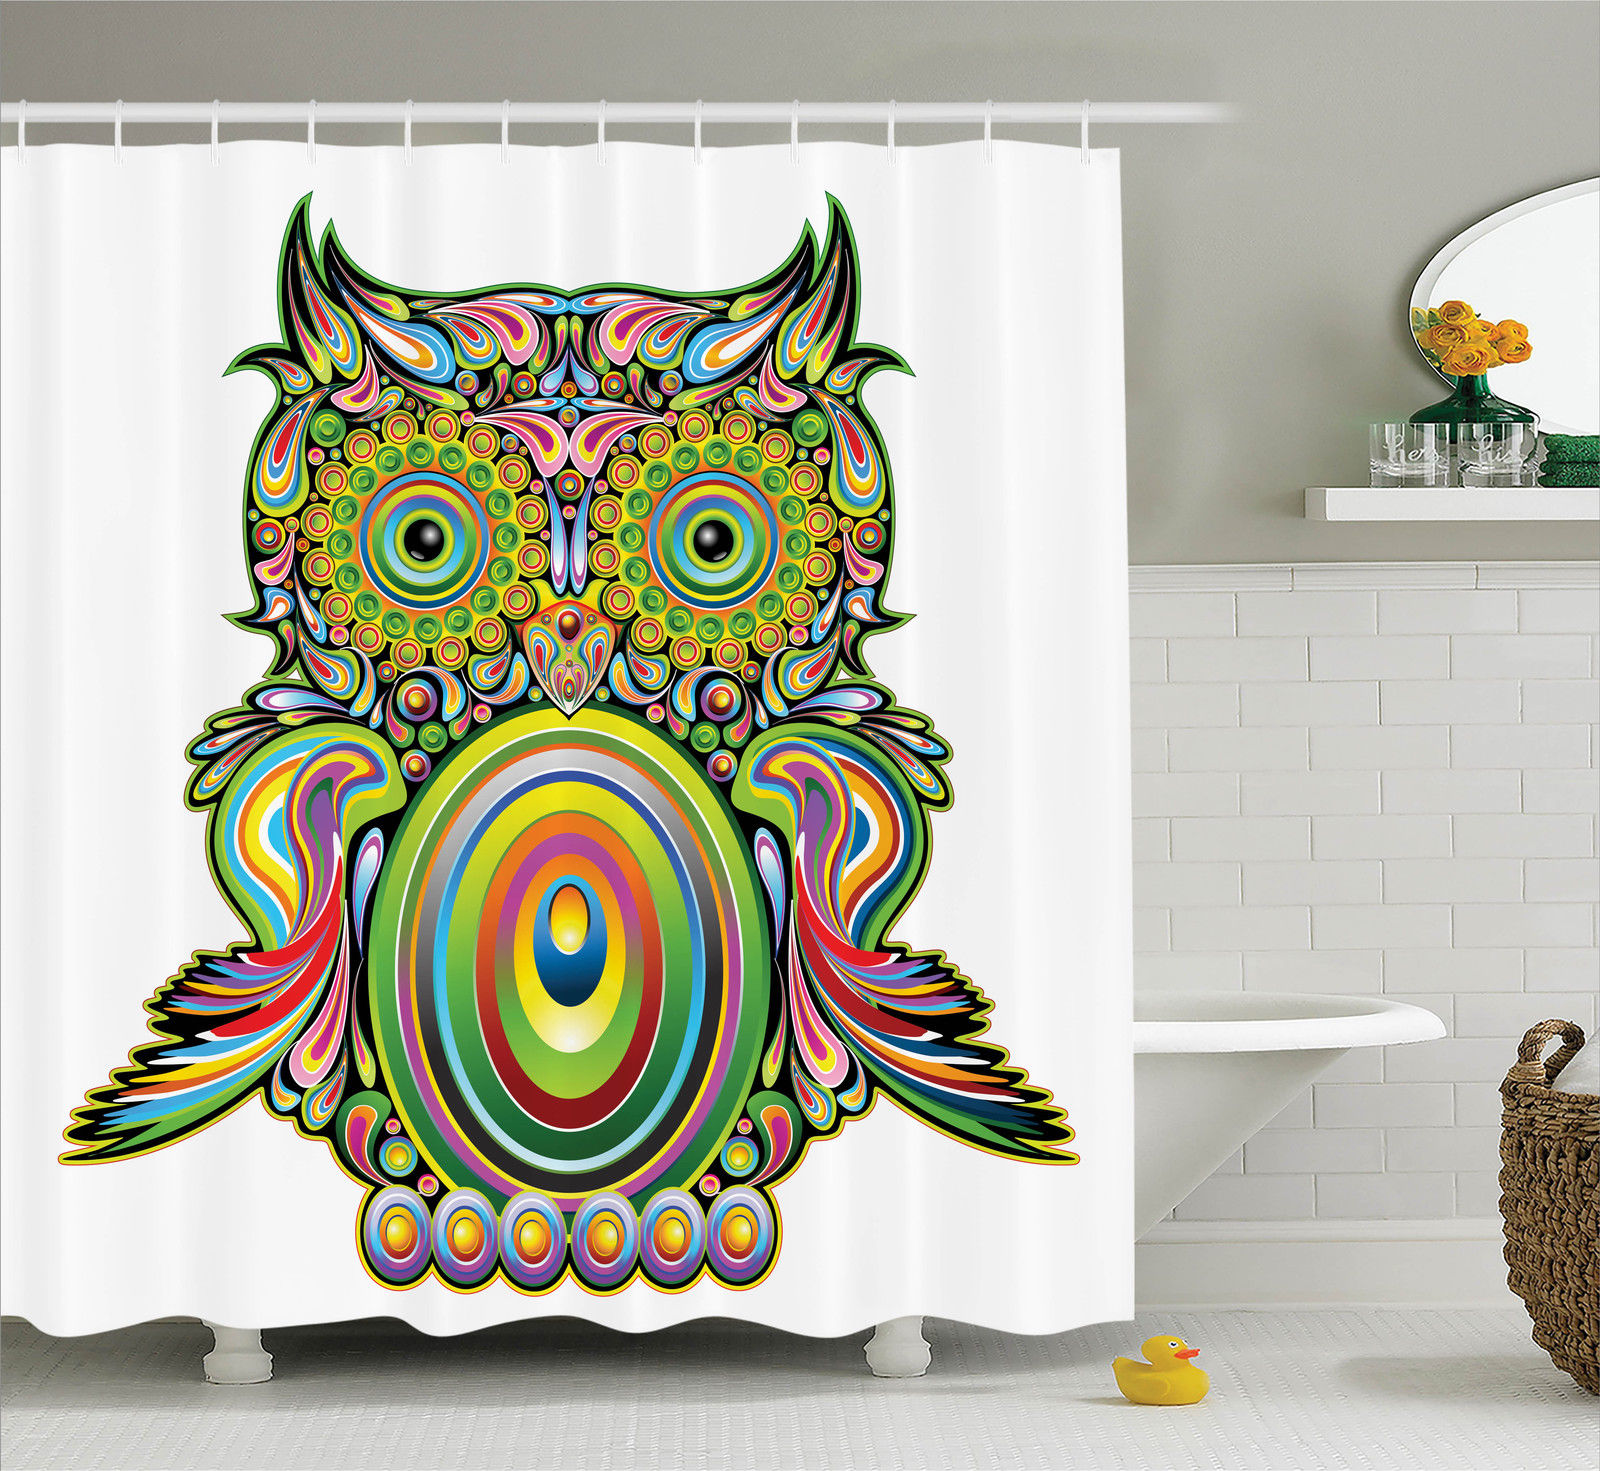 Owls Home Decor Shower Curtain Set, Ornate Colorful Owl With Ethnic  Elements Legend Eye Feather